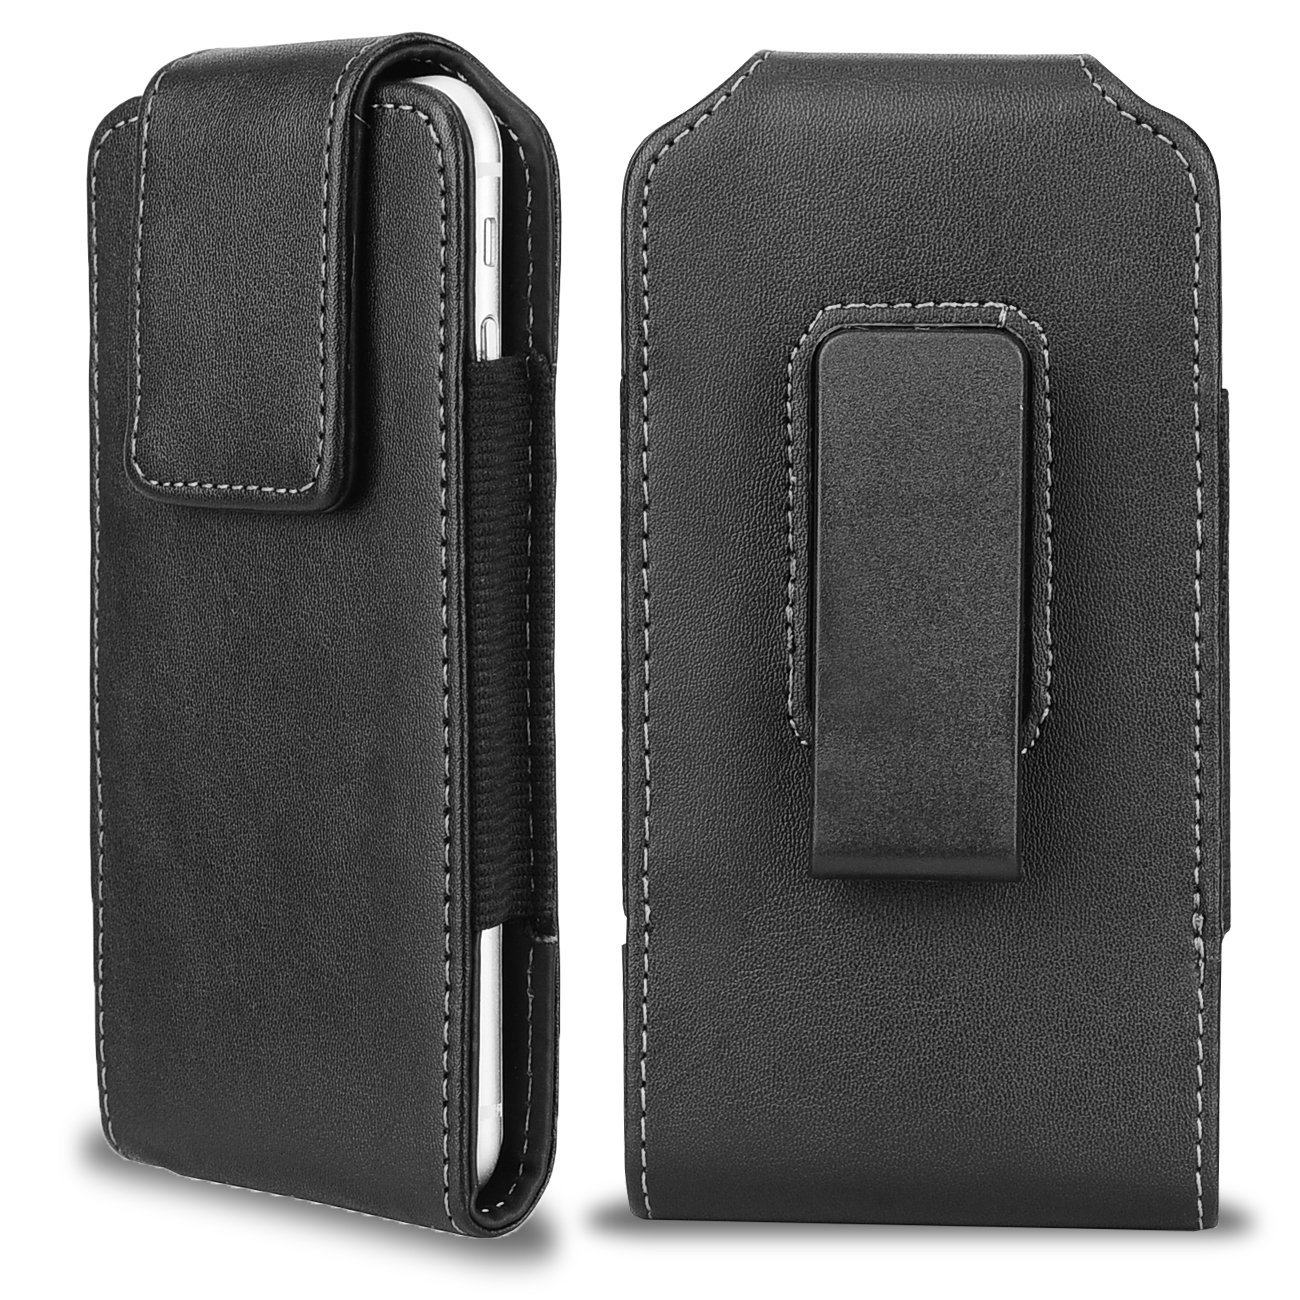 iPhone 6 Plus Vertical Leather Belt Case, Samcore® Clip Holster Pouch Carrying Sleeve (Fits iPhone 6 Plus / Galaxy Note 3 / Galaxy Note 4 / Galaxy Note 5)